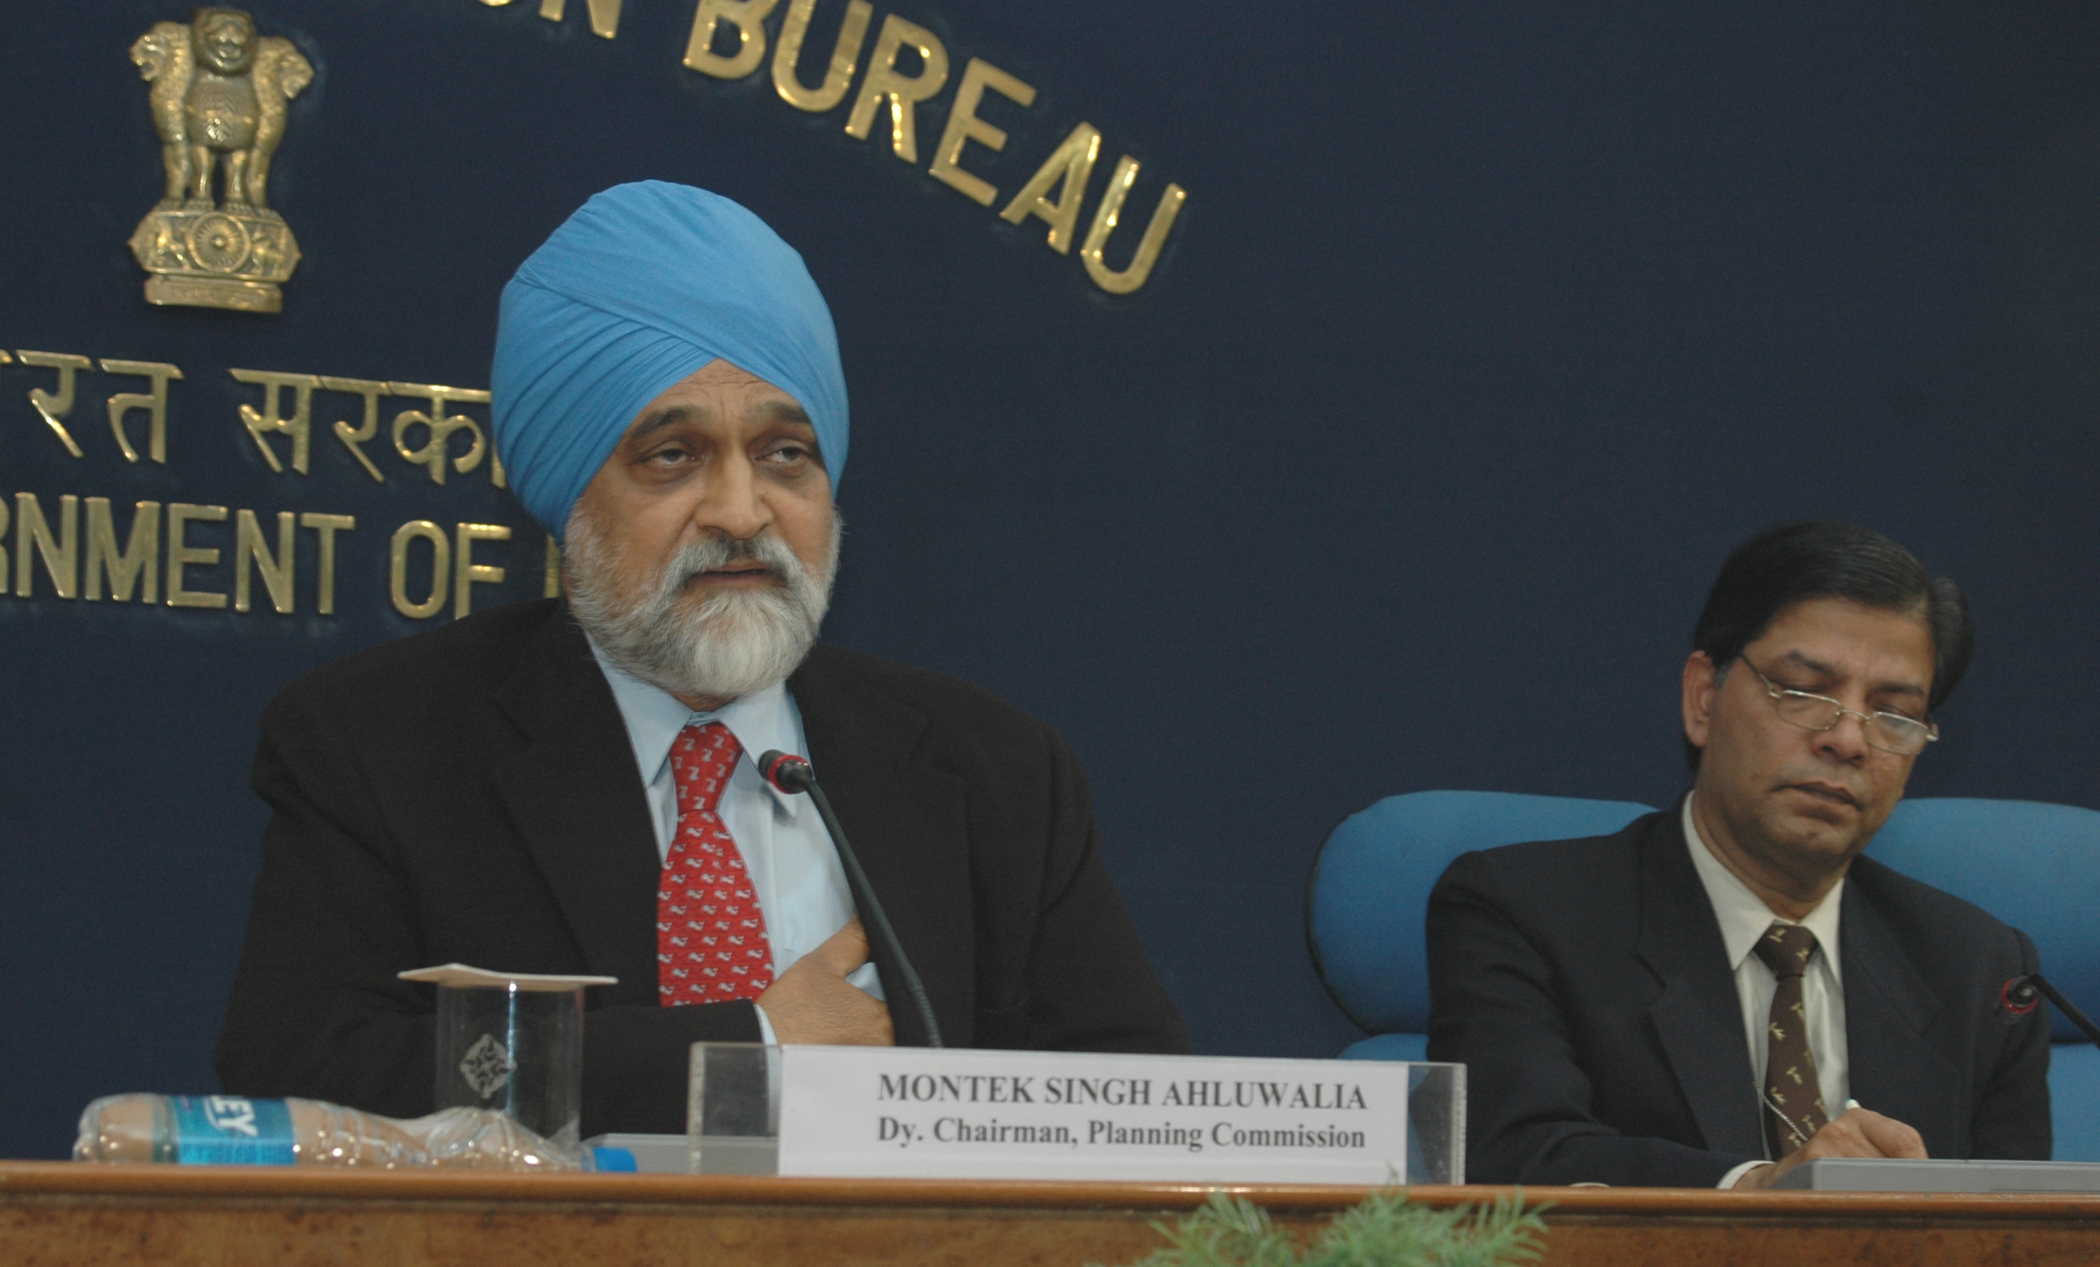 Commission, Dr. Montek Singh Ahluwalia briefing the press on Economic Stimulus Package, in New Delhi on January 02, 2009 (1).jpg English: The Deputy Chairman